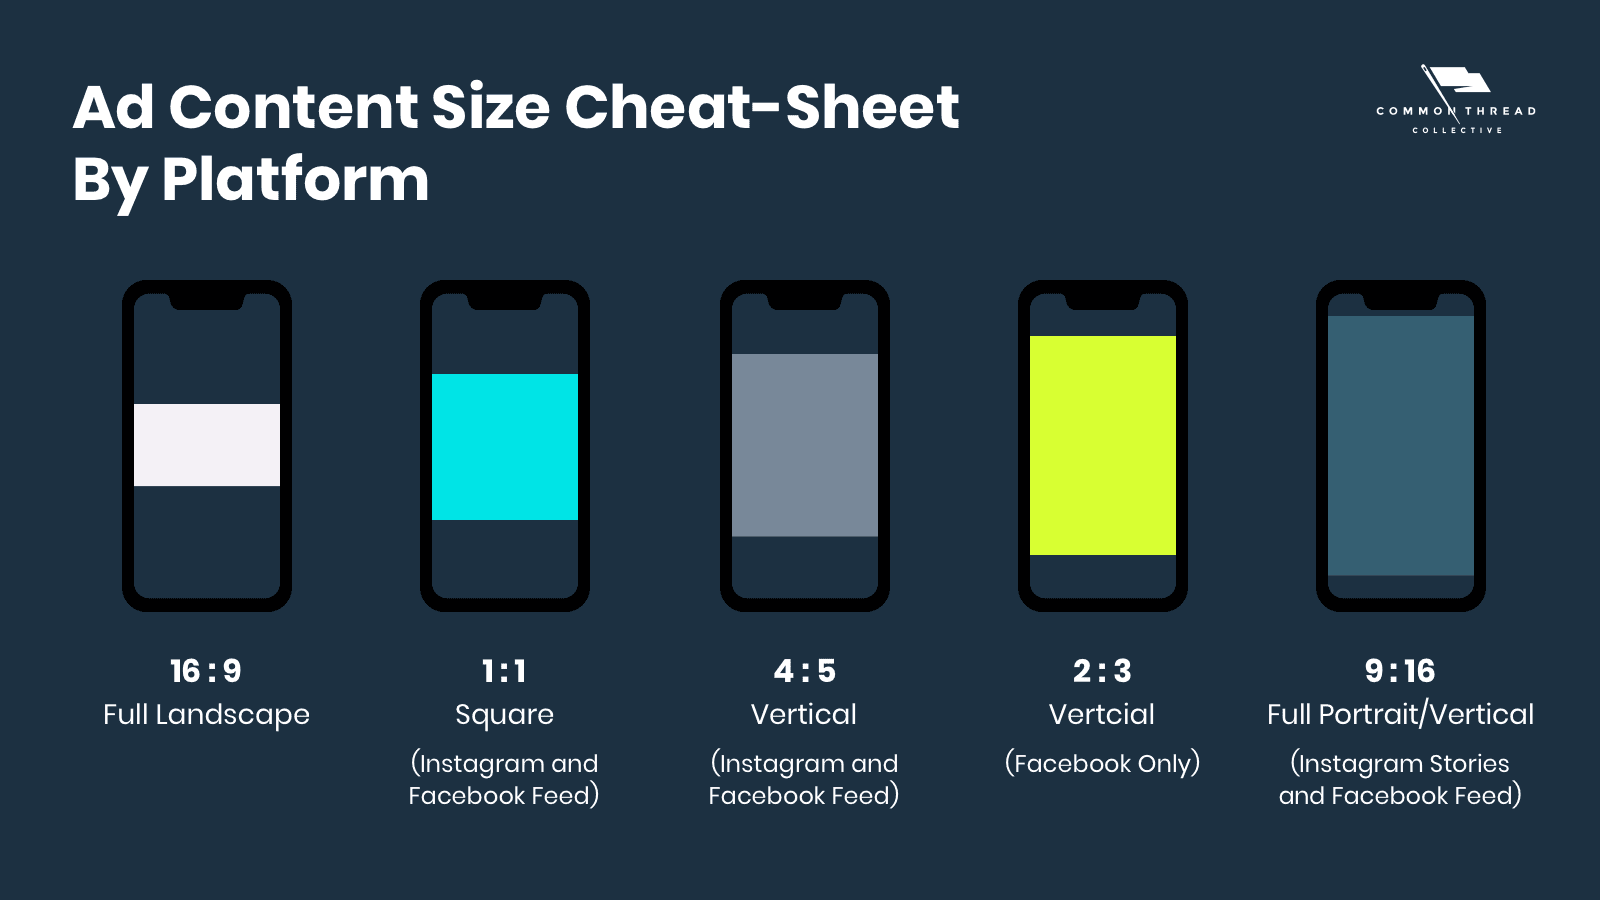 Ad Content Size Cheat-Sheet by Platform